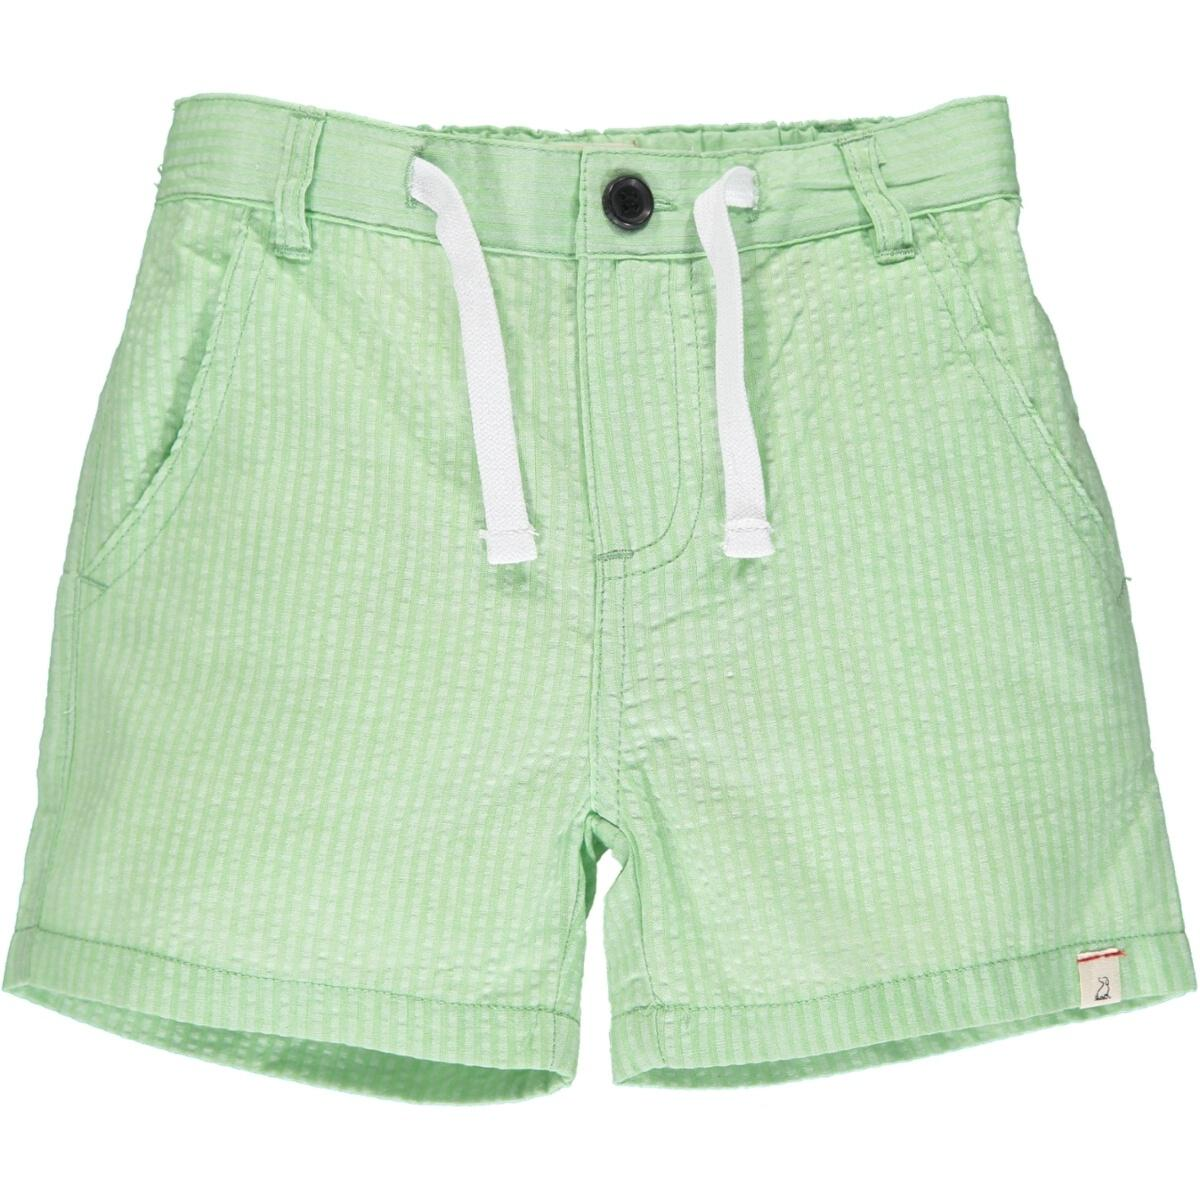 Crew Shorts- Lime Seersucker